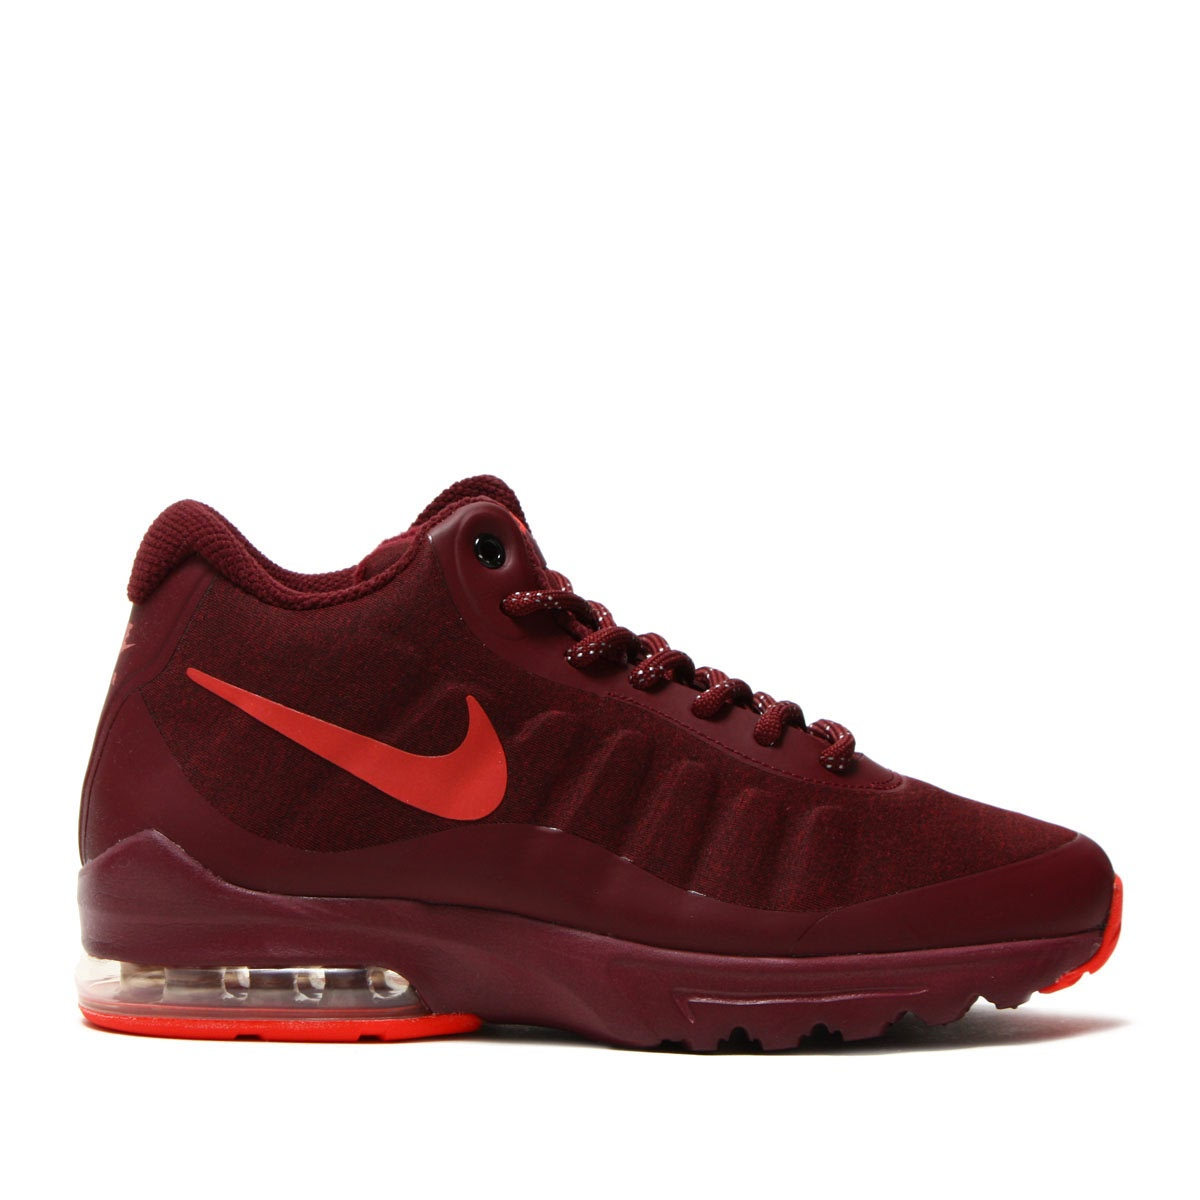 Nike Mens Air Max Invigor Mid Low Top Lace Up Running Sneaker ... 3a8c00d5458ef